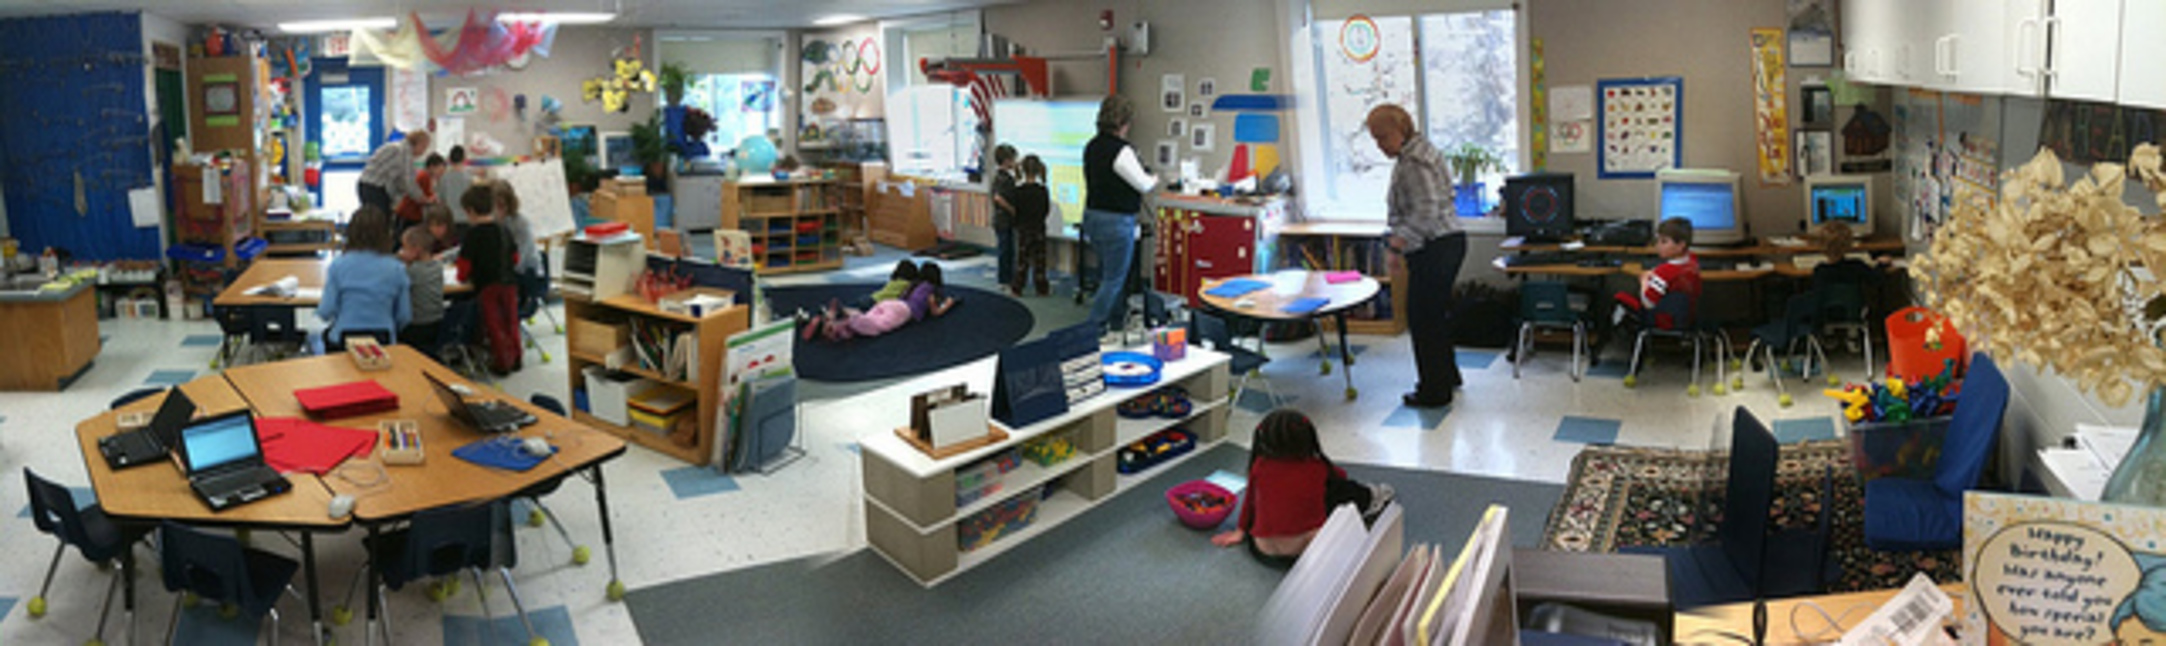 Open Classroom Design ~ Students struggle to hear teacher in new fad open plan